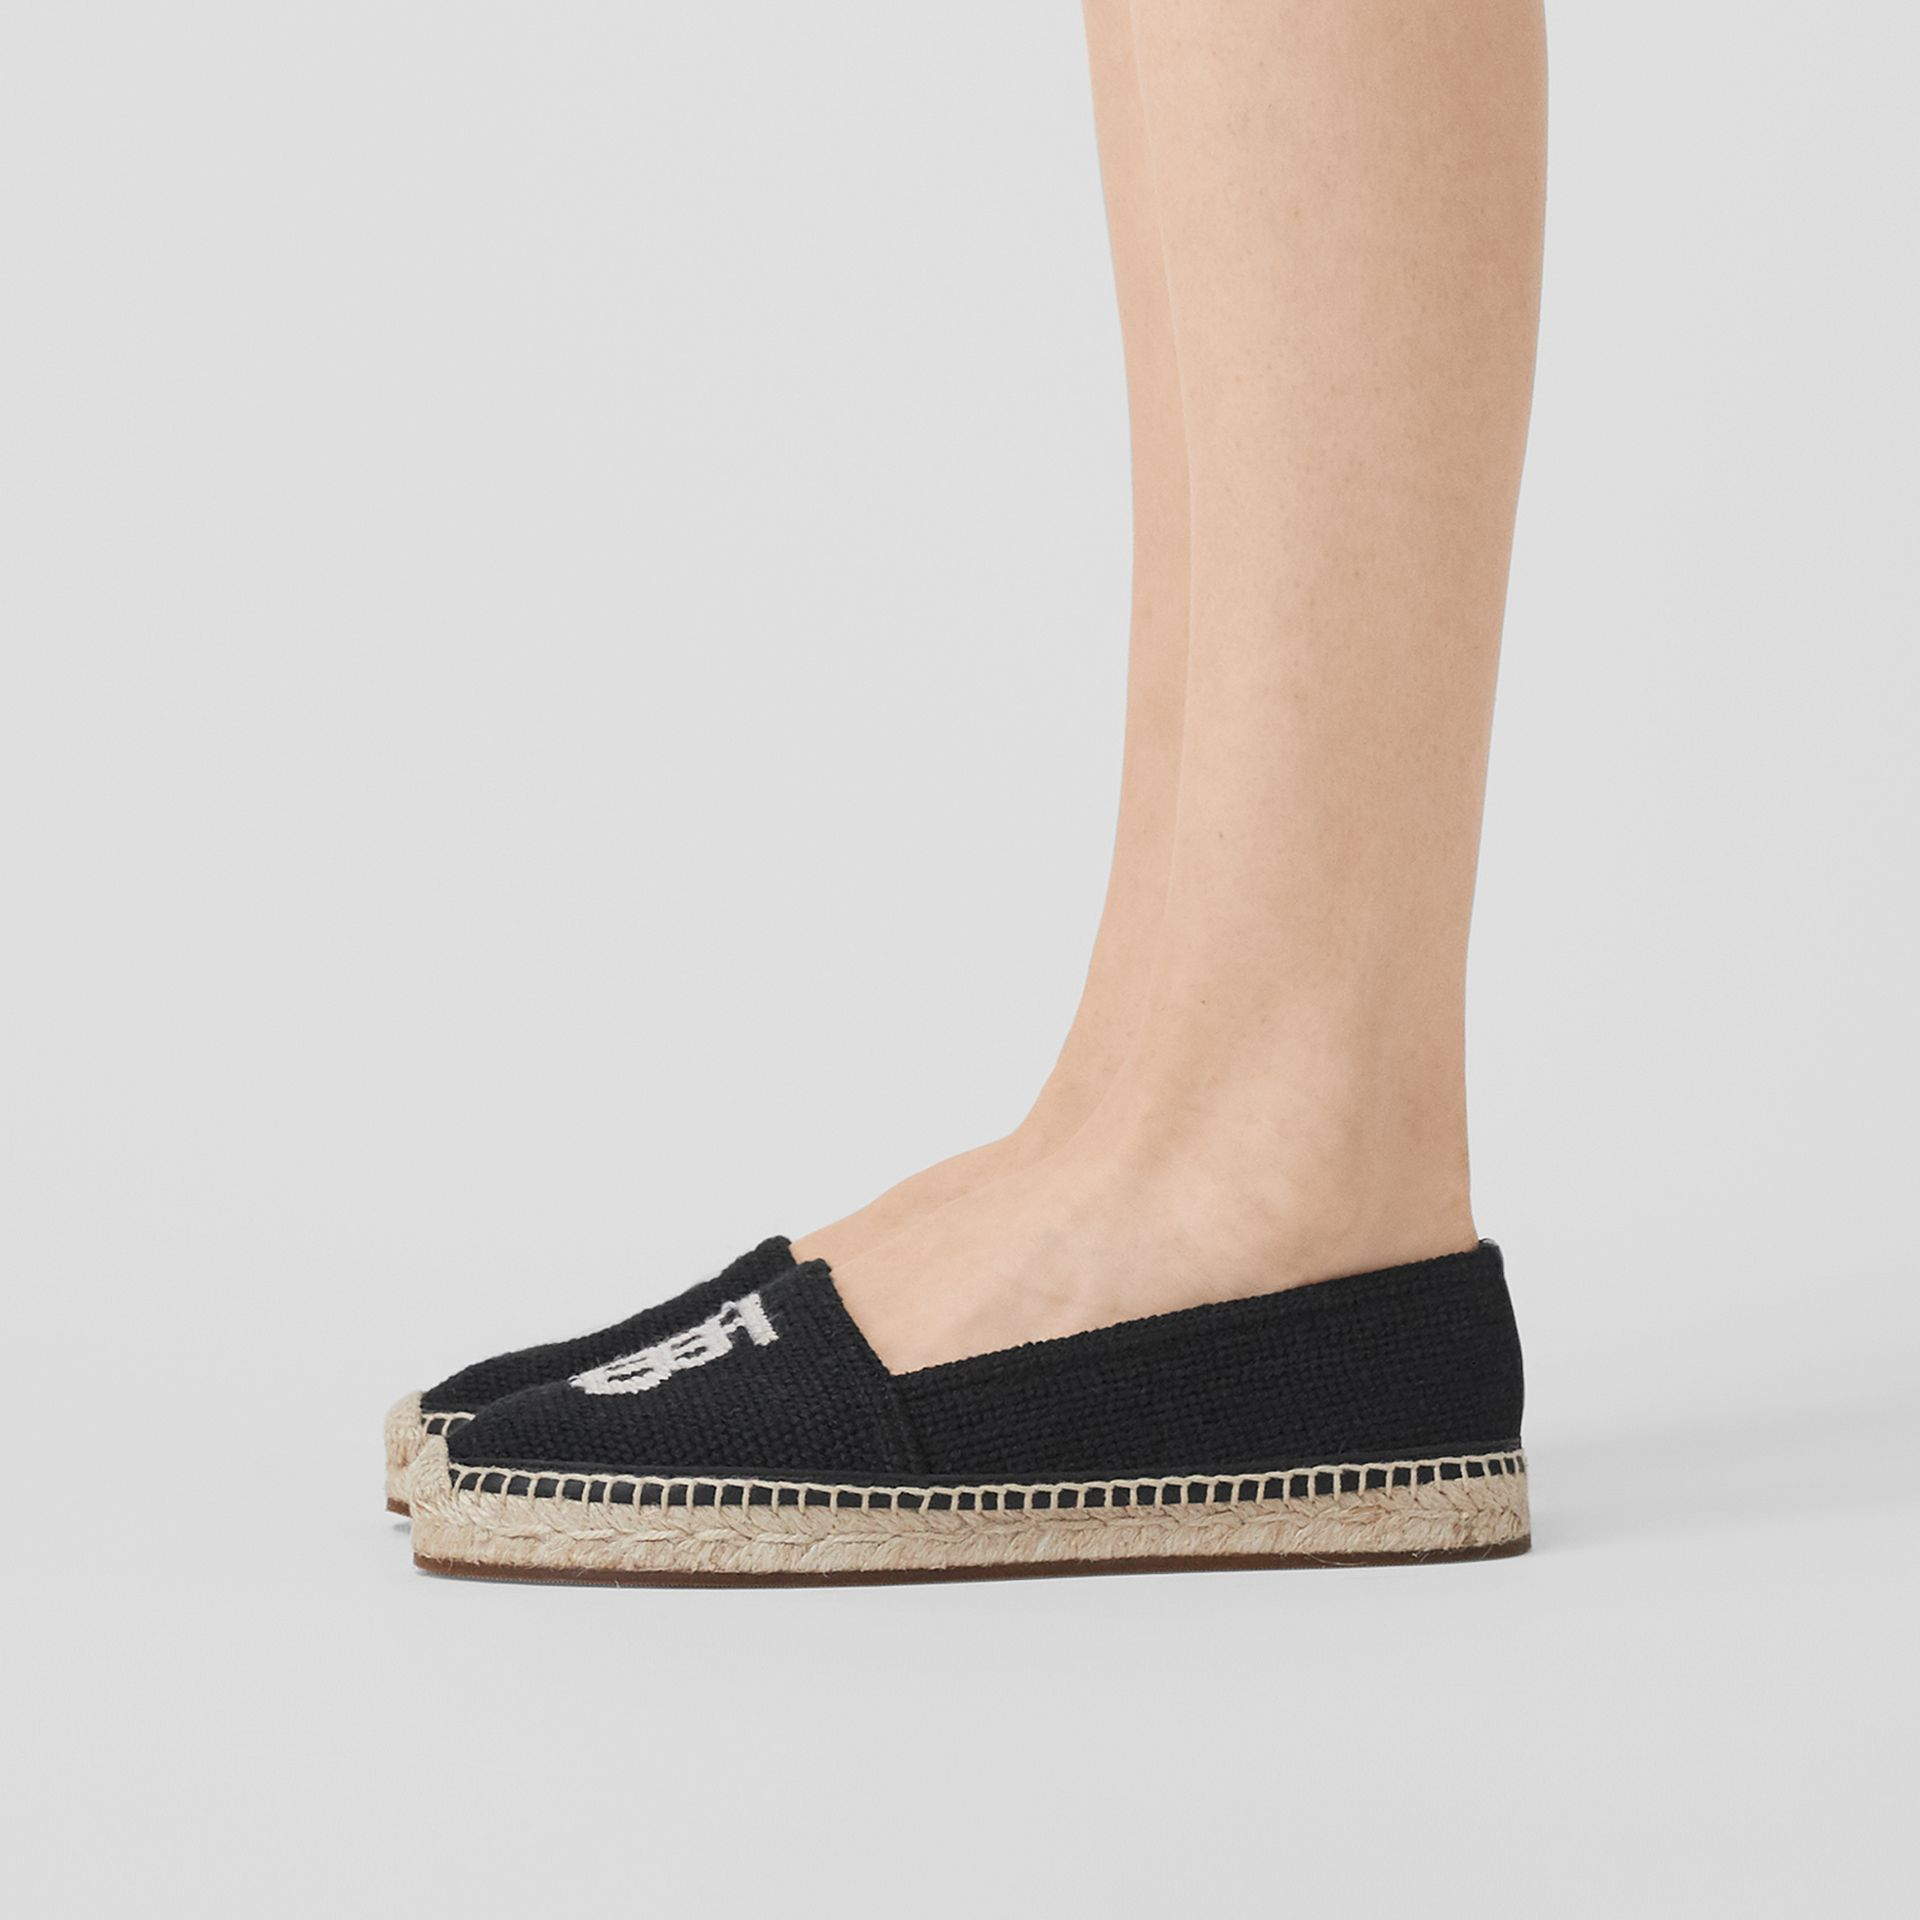 Monogram Motif Cotton and Leather Espadrilles in Black/ecru - Women | Burberry United Kingdom - gallery image 2